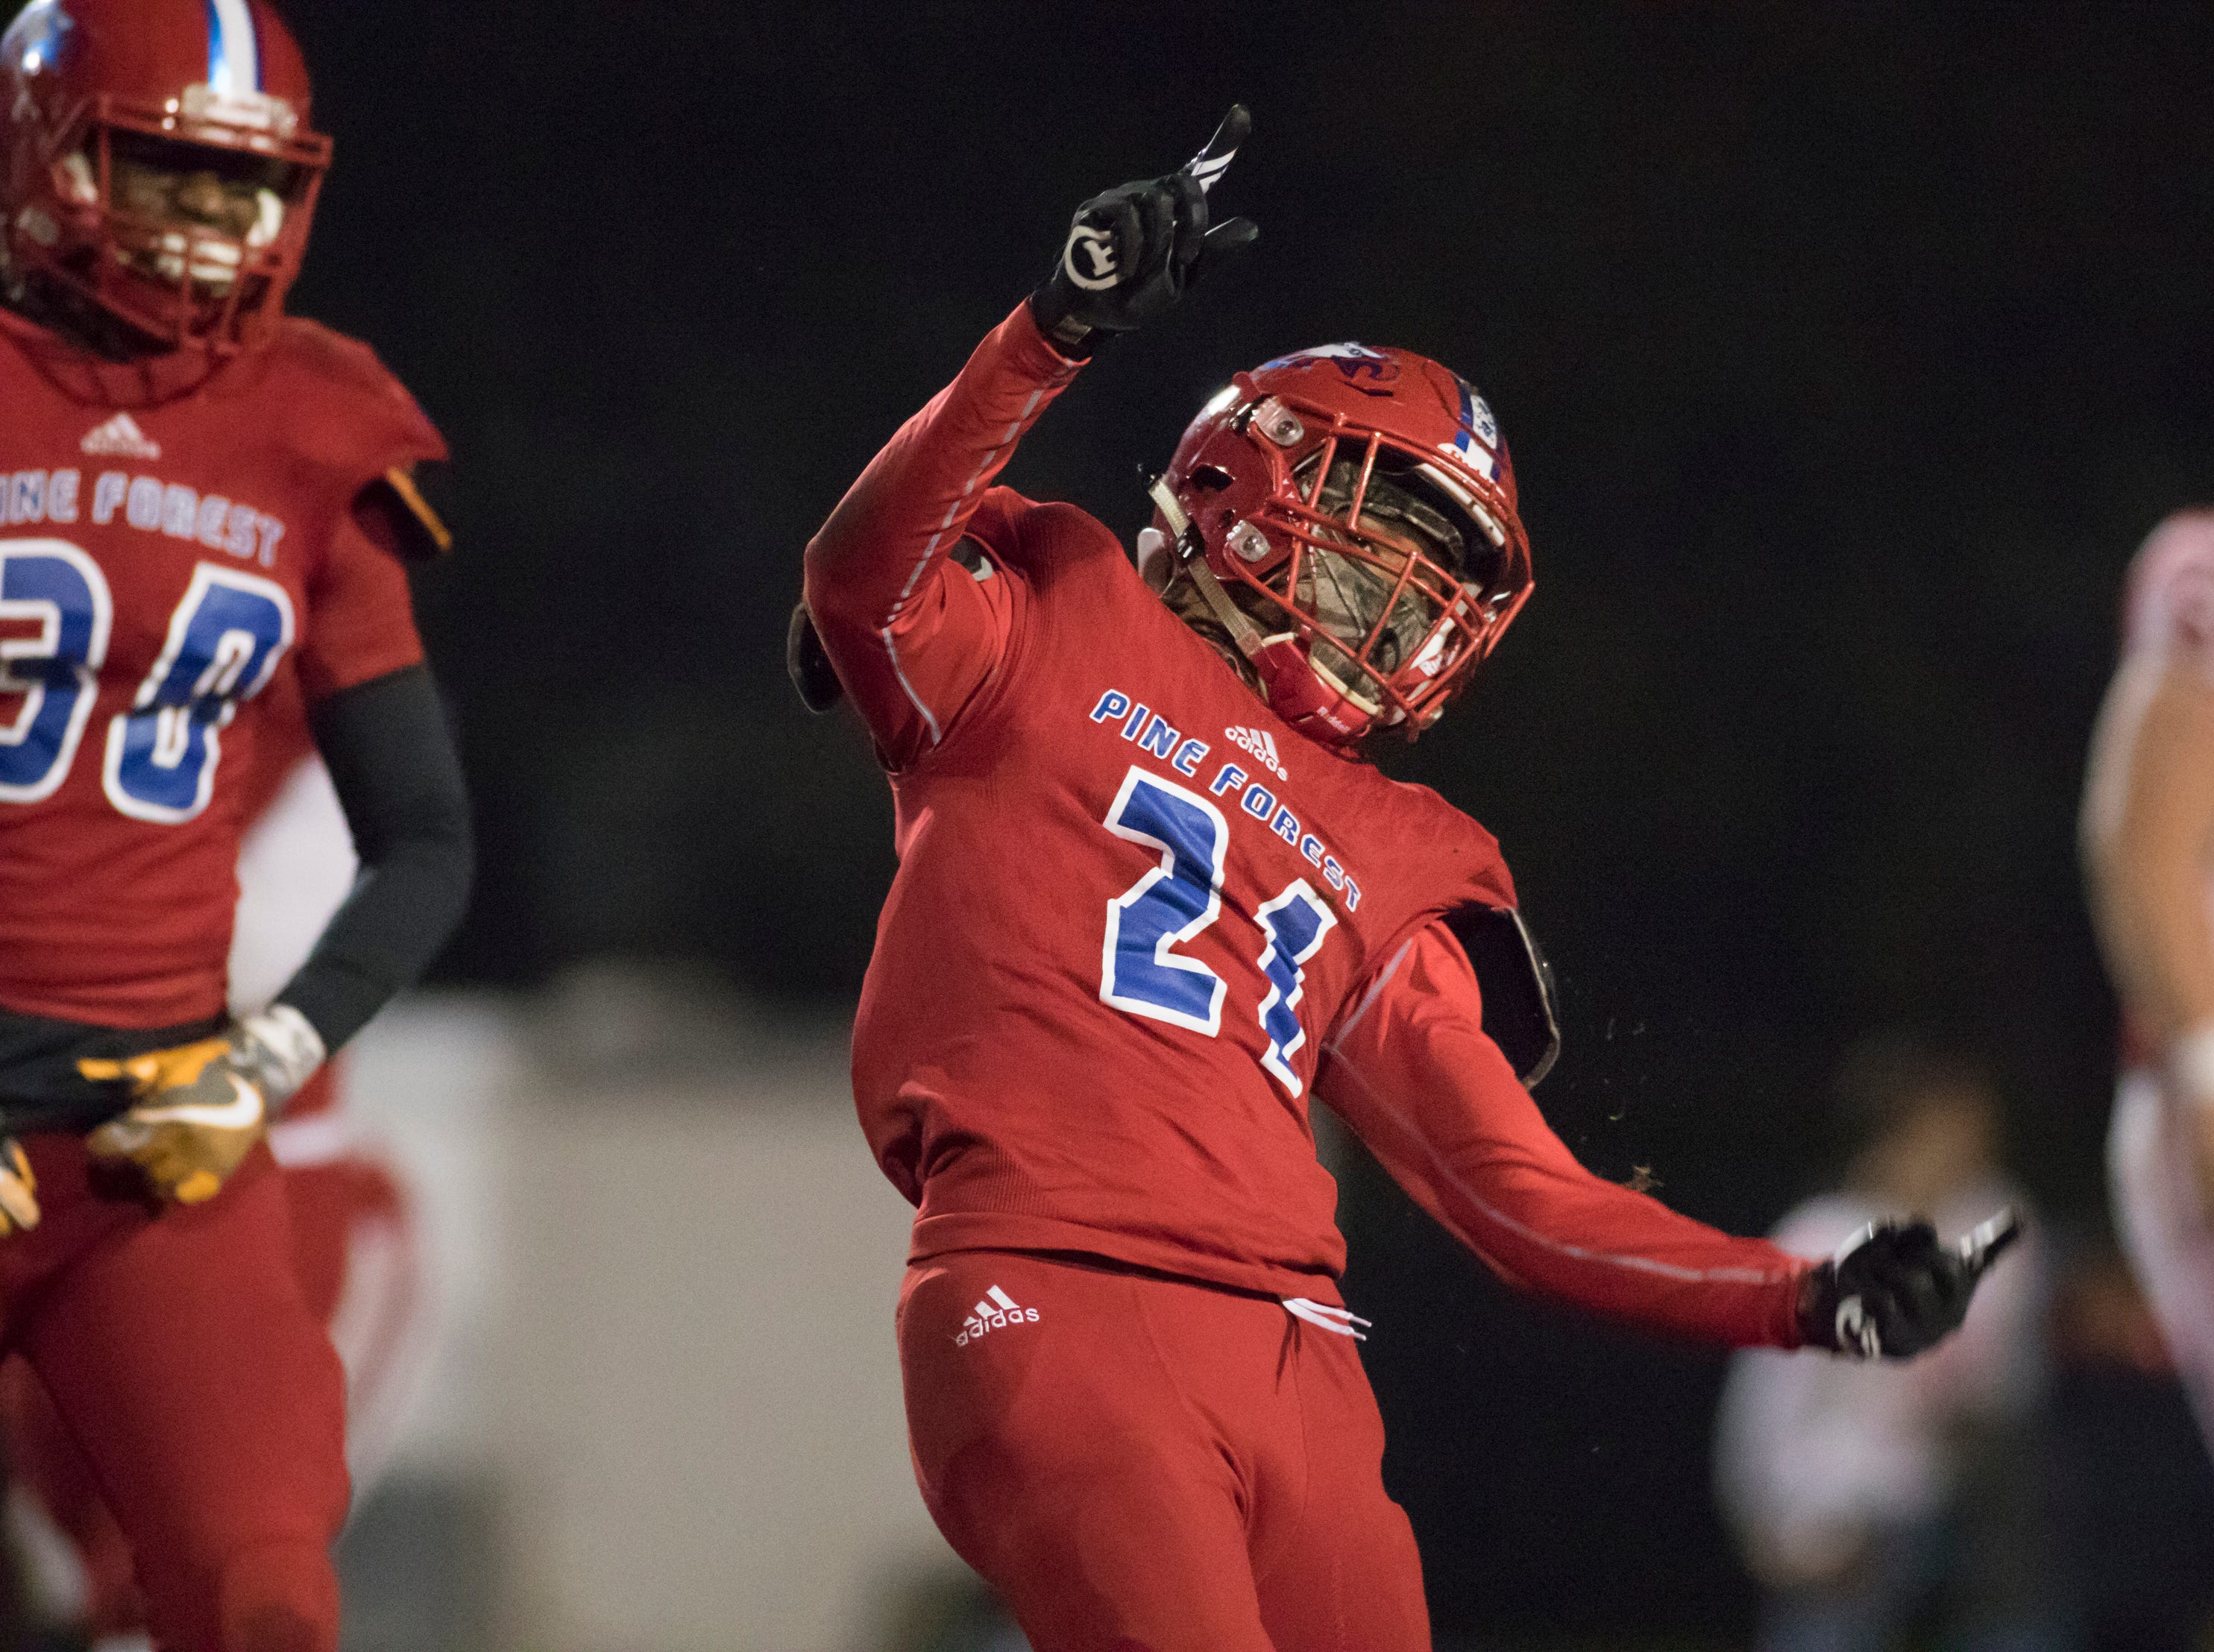 Devon Witherspoon (21) celebrates after making a sack during the Crestview vs Pine Forest playoff football game at Pine Forest High School on Friday, November 16, 2018.